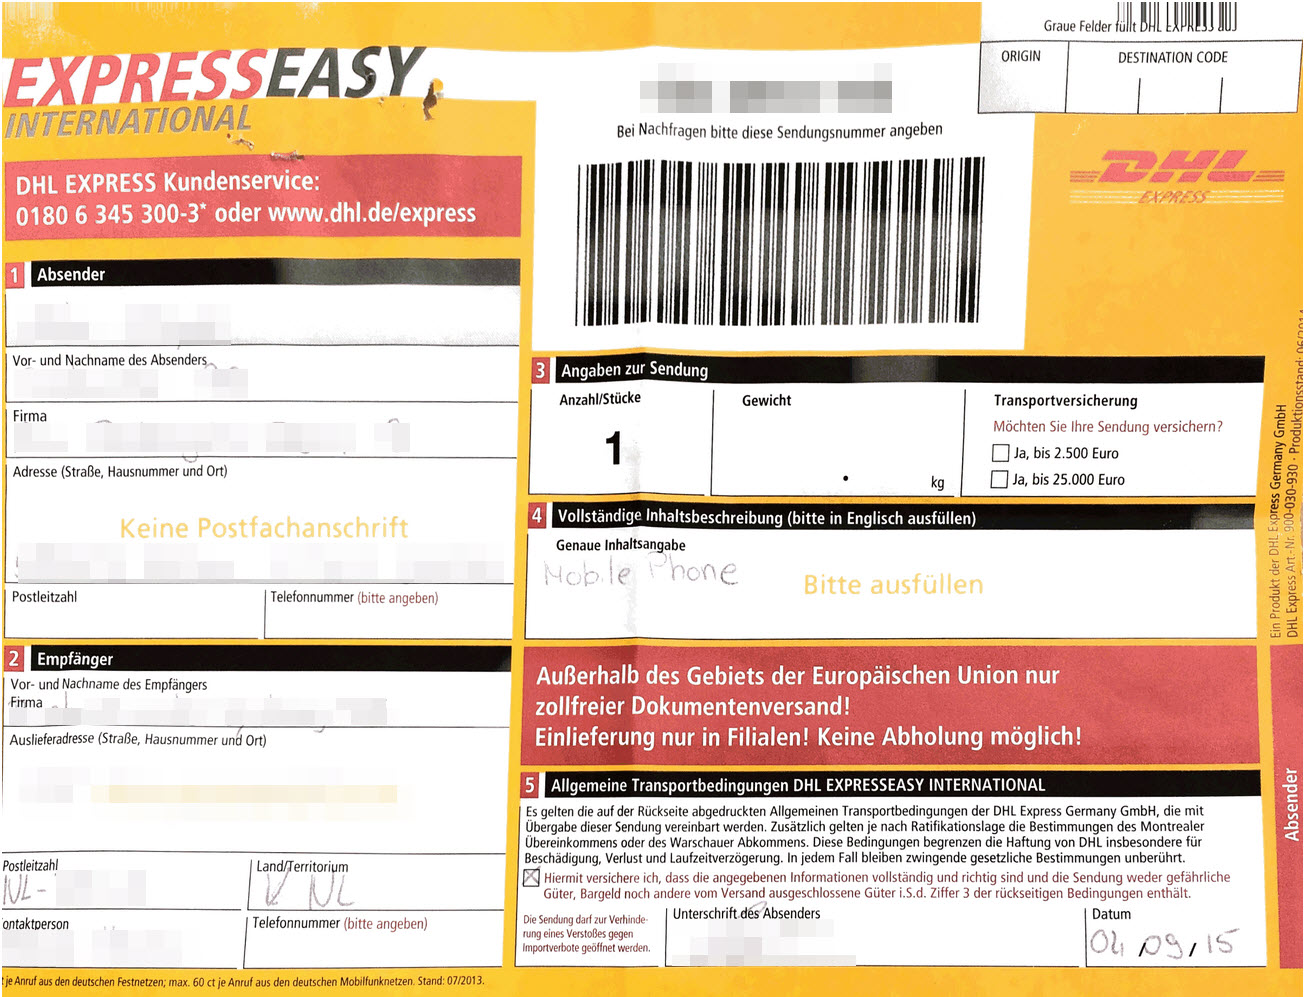 DHL ExpressEasy International